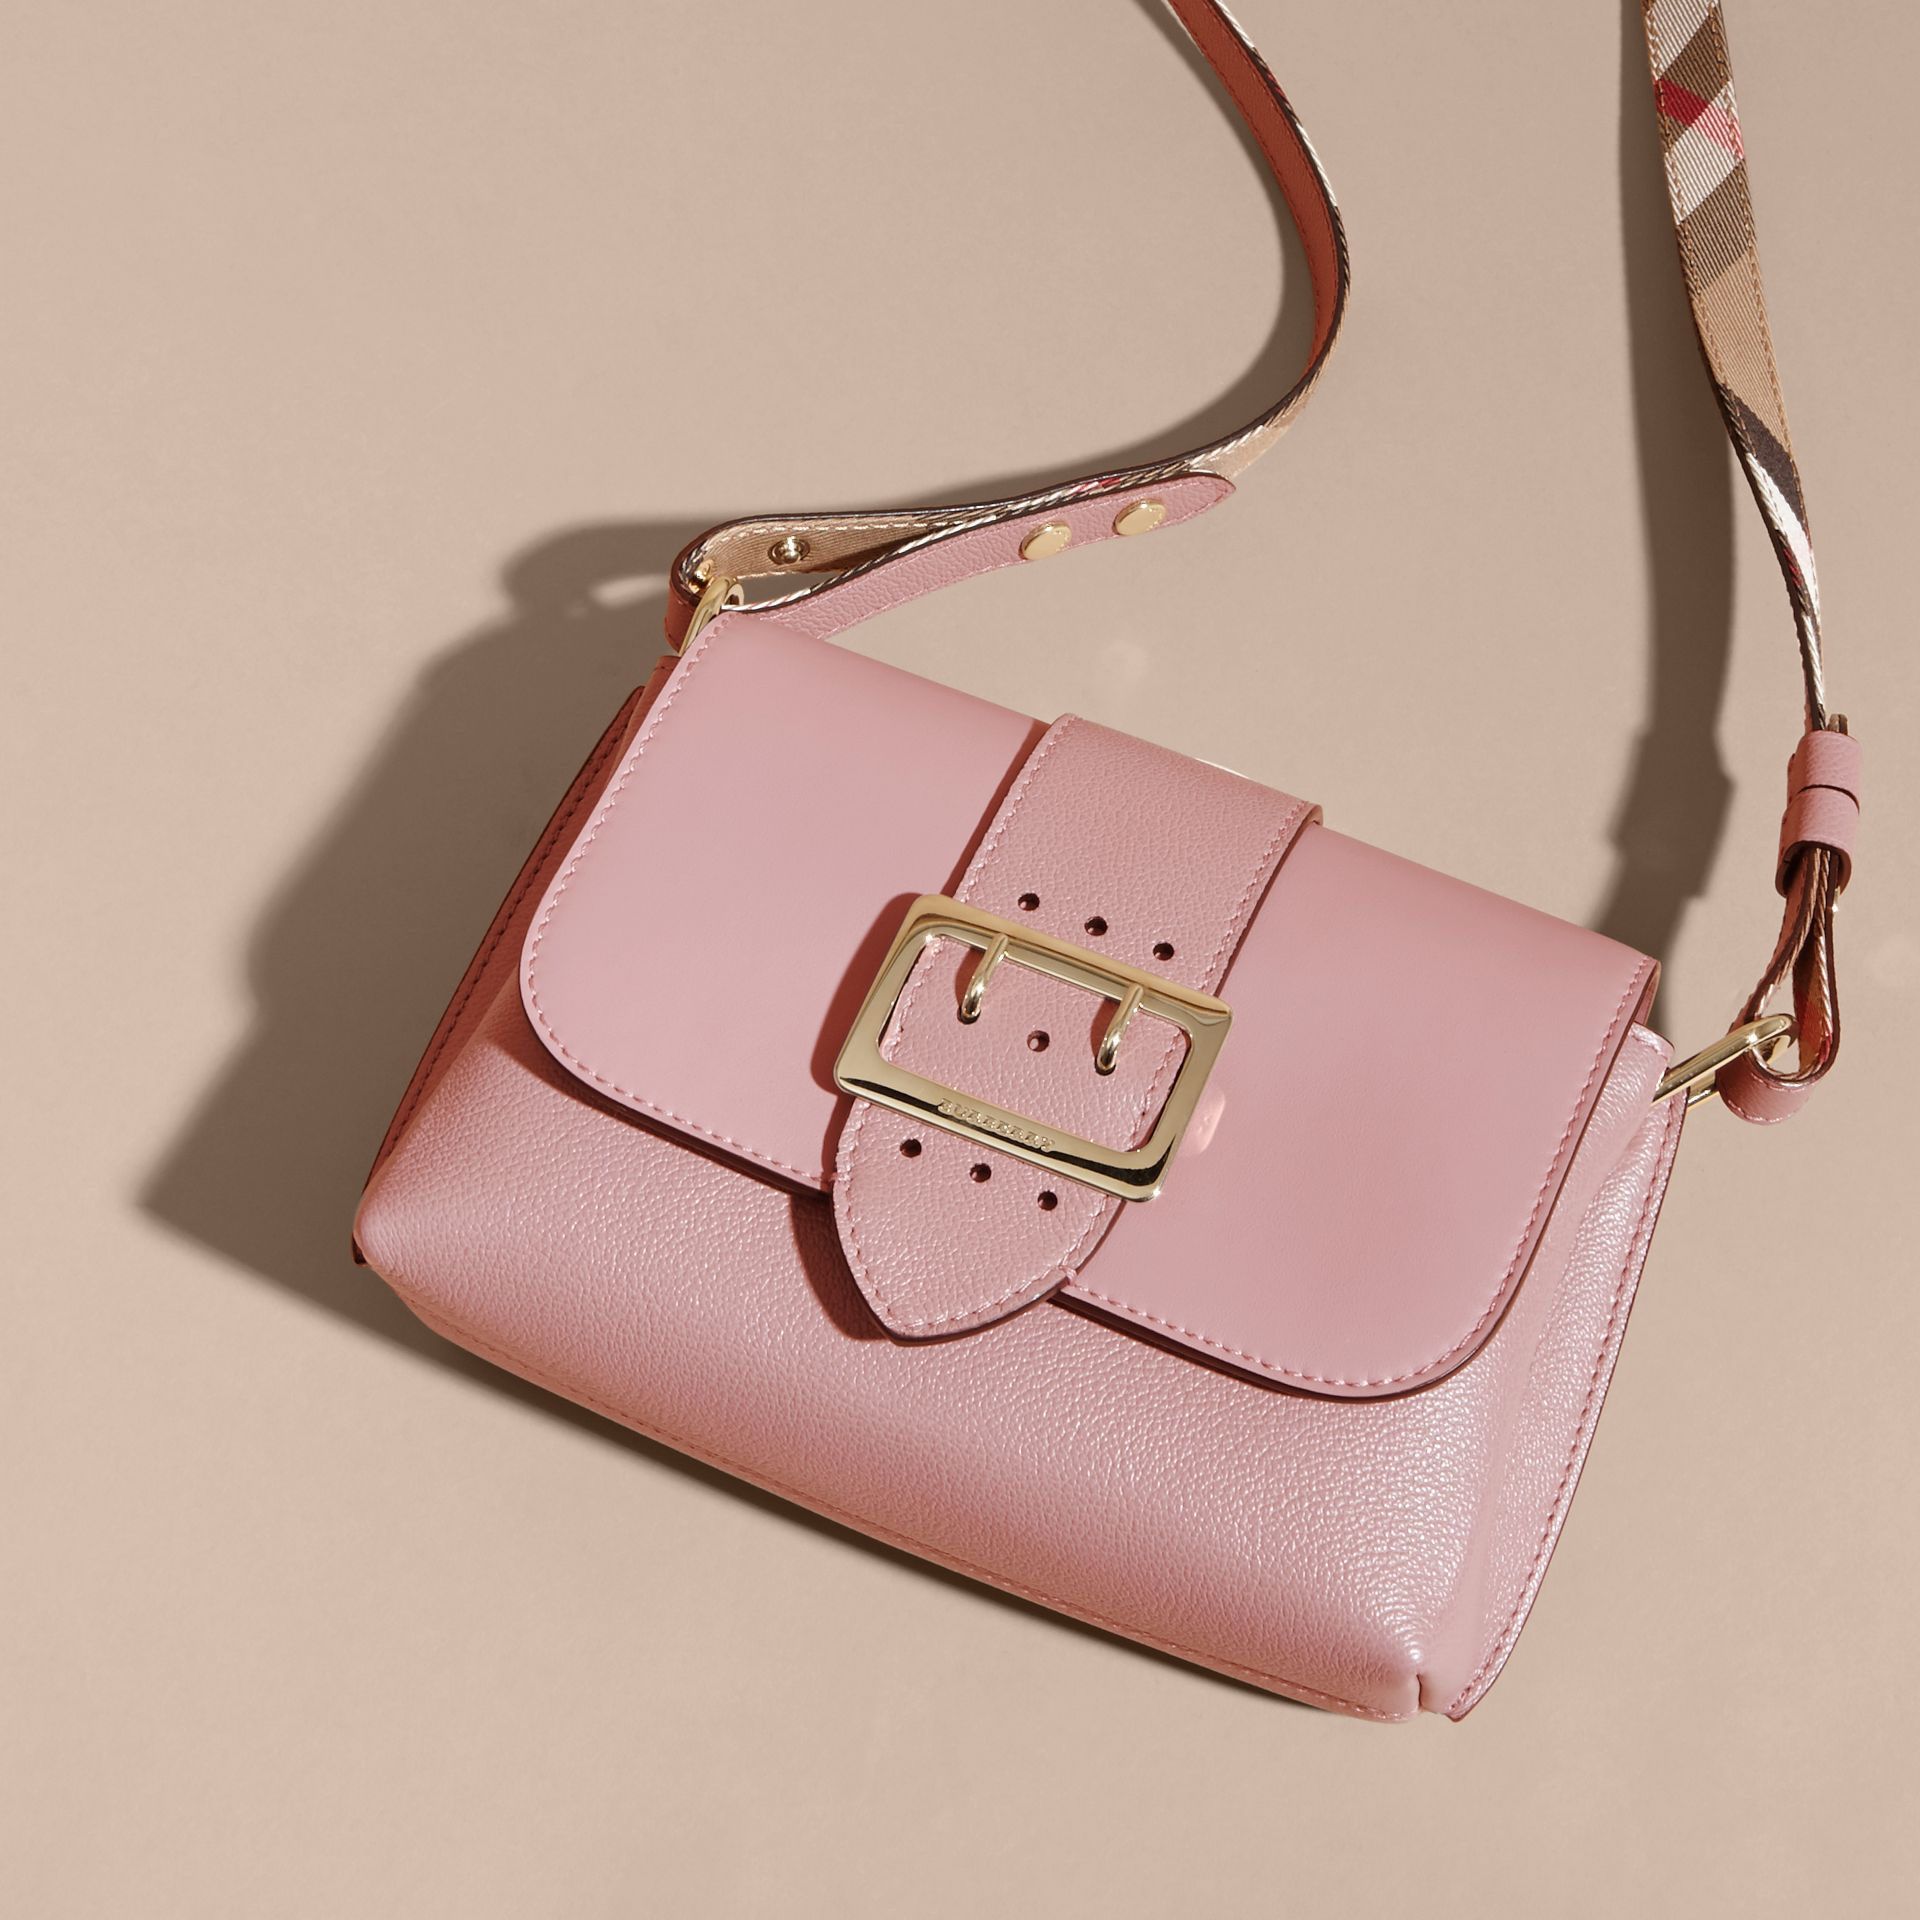 The Buckle Crossbody Bag in Leather in Dusty Pink - gallery image 8